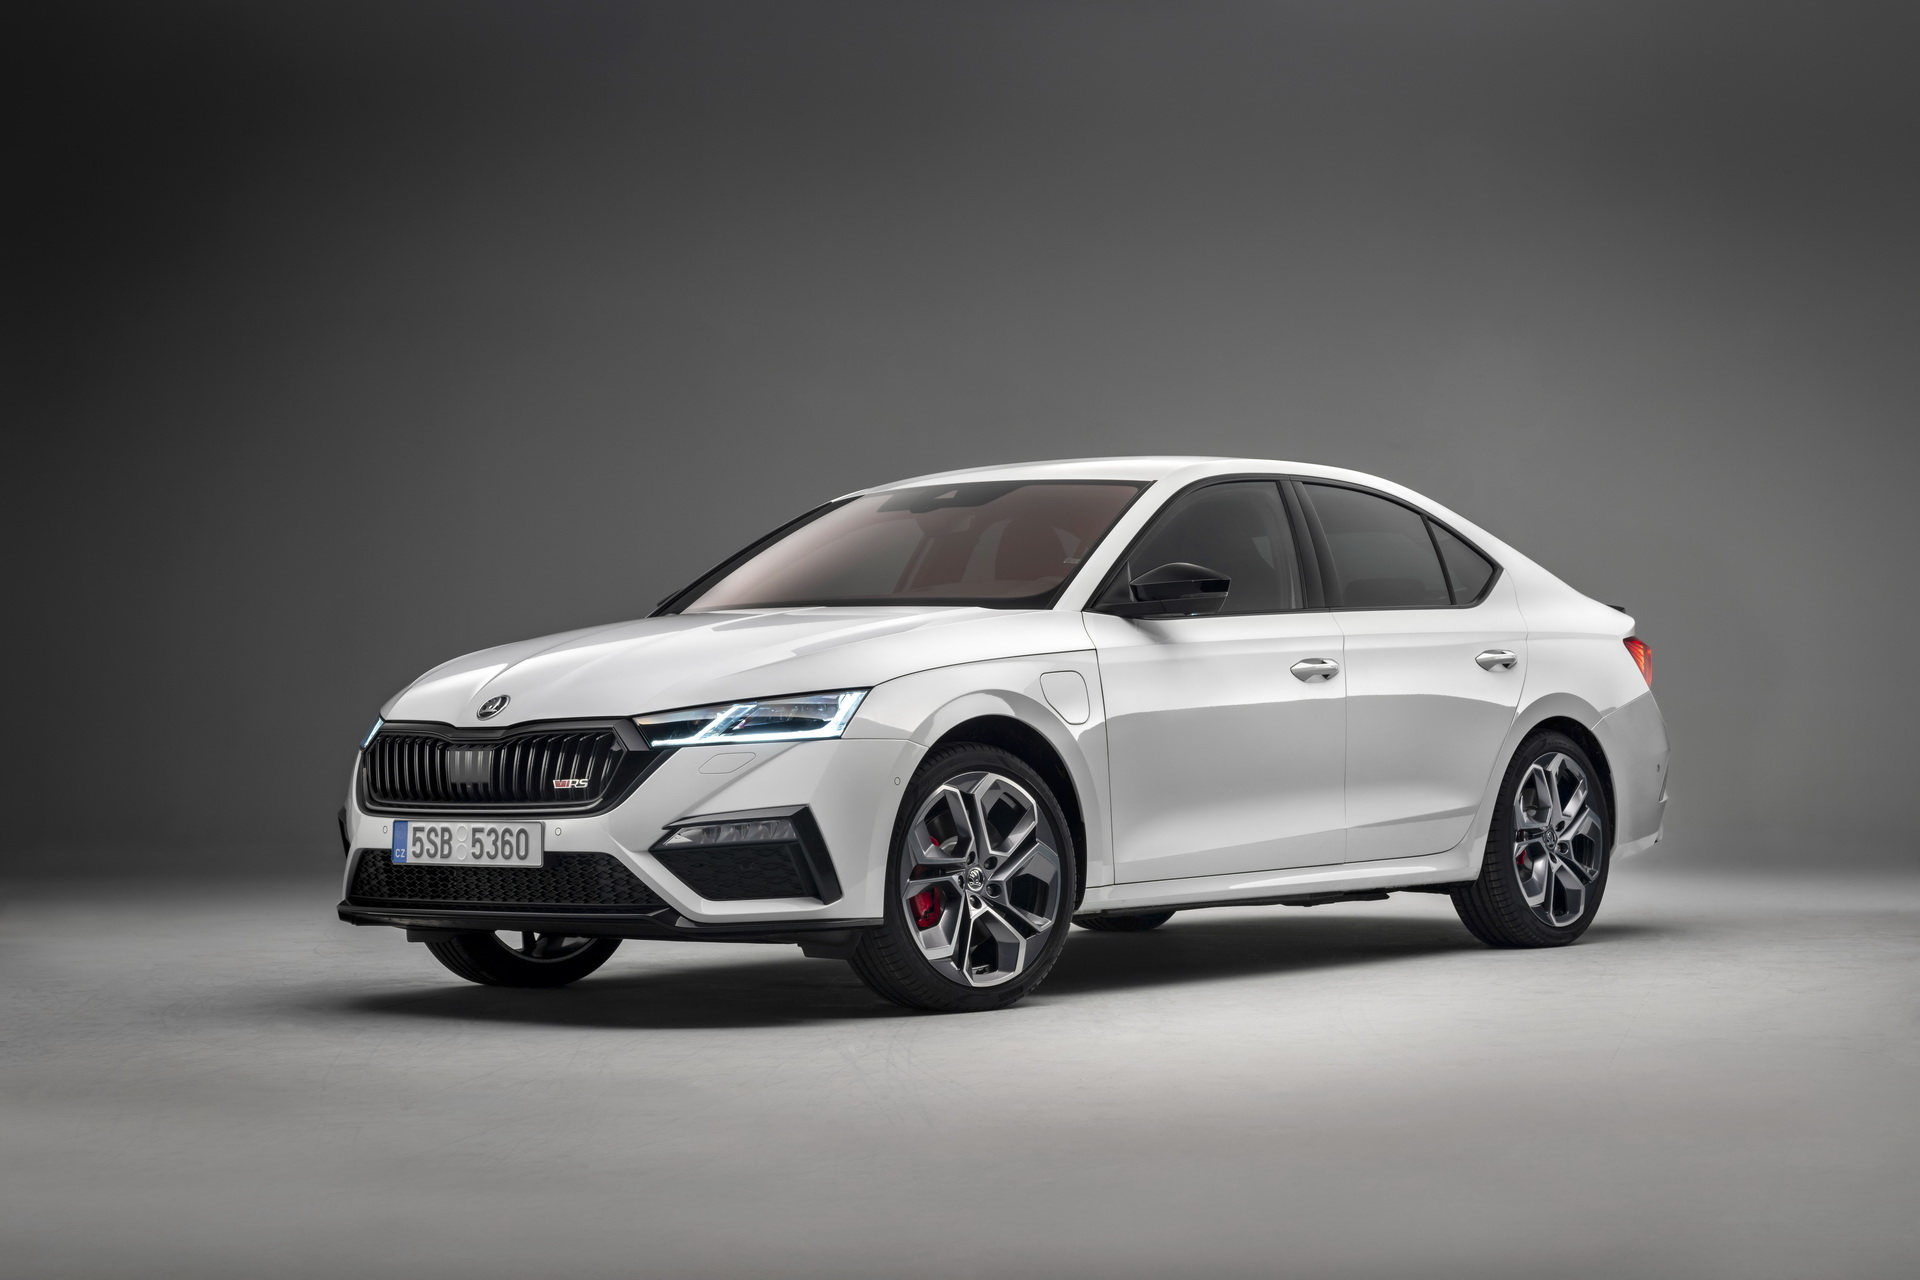 2020-skoda-octavia-rs-unveiled-1